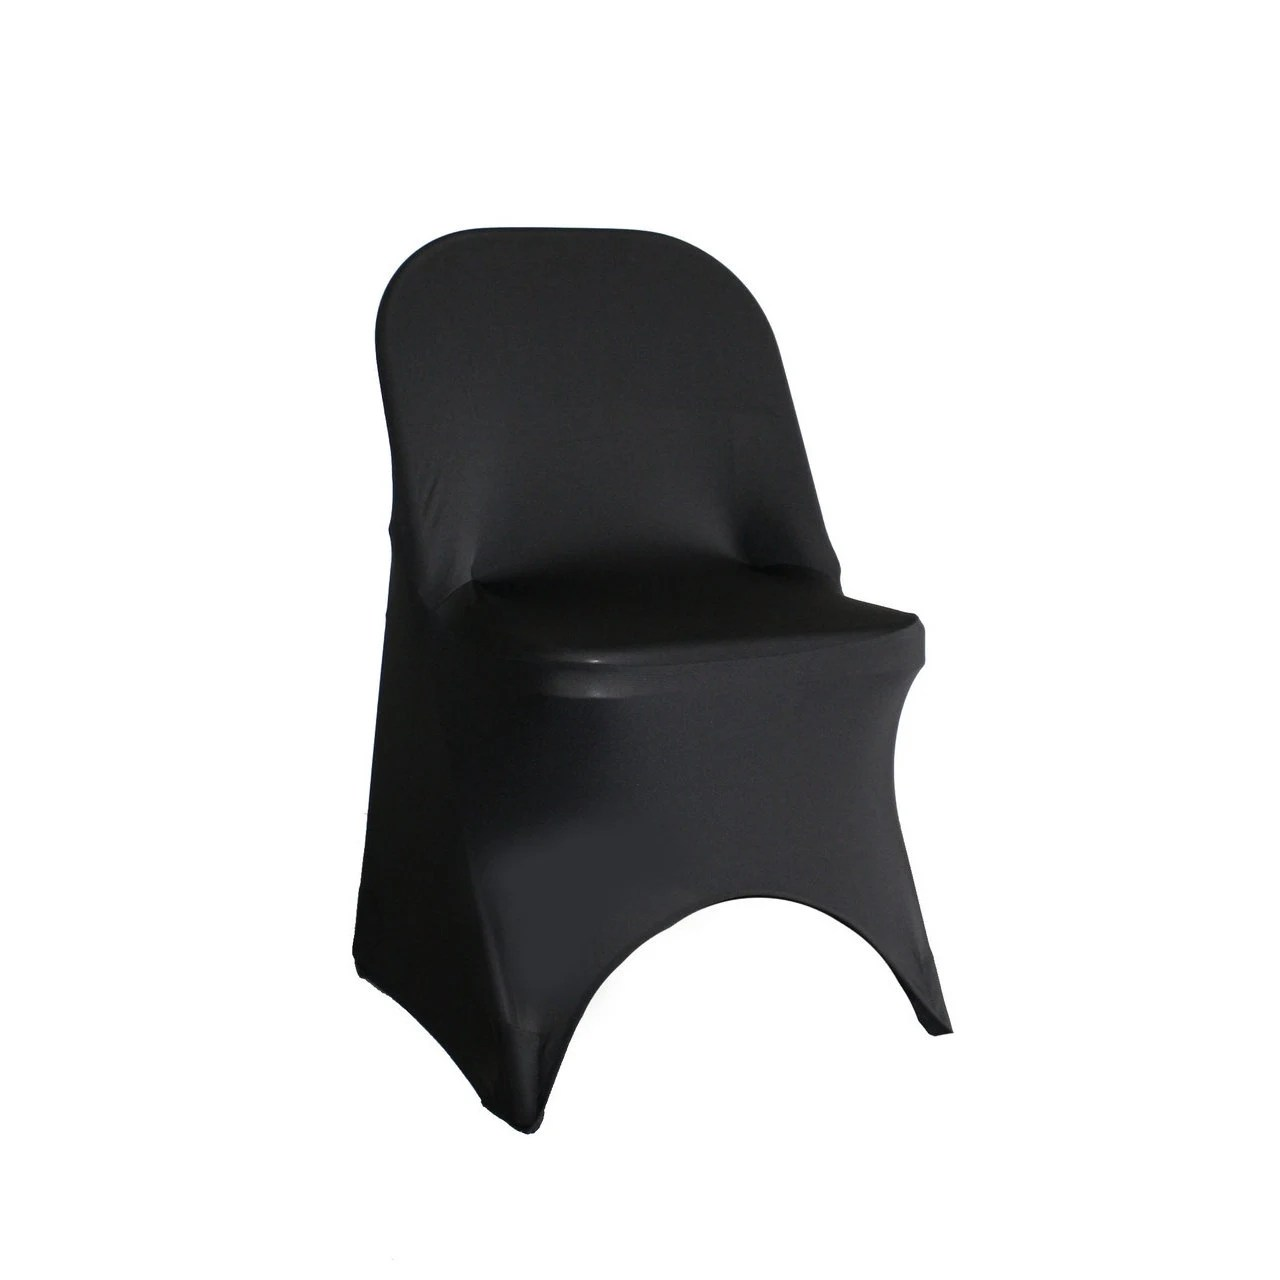 stretch chair covers office with built in footrest spandex folding cover black